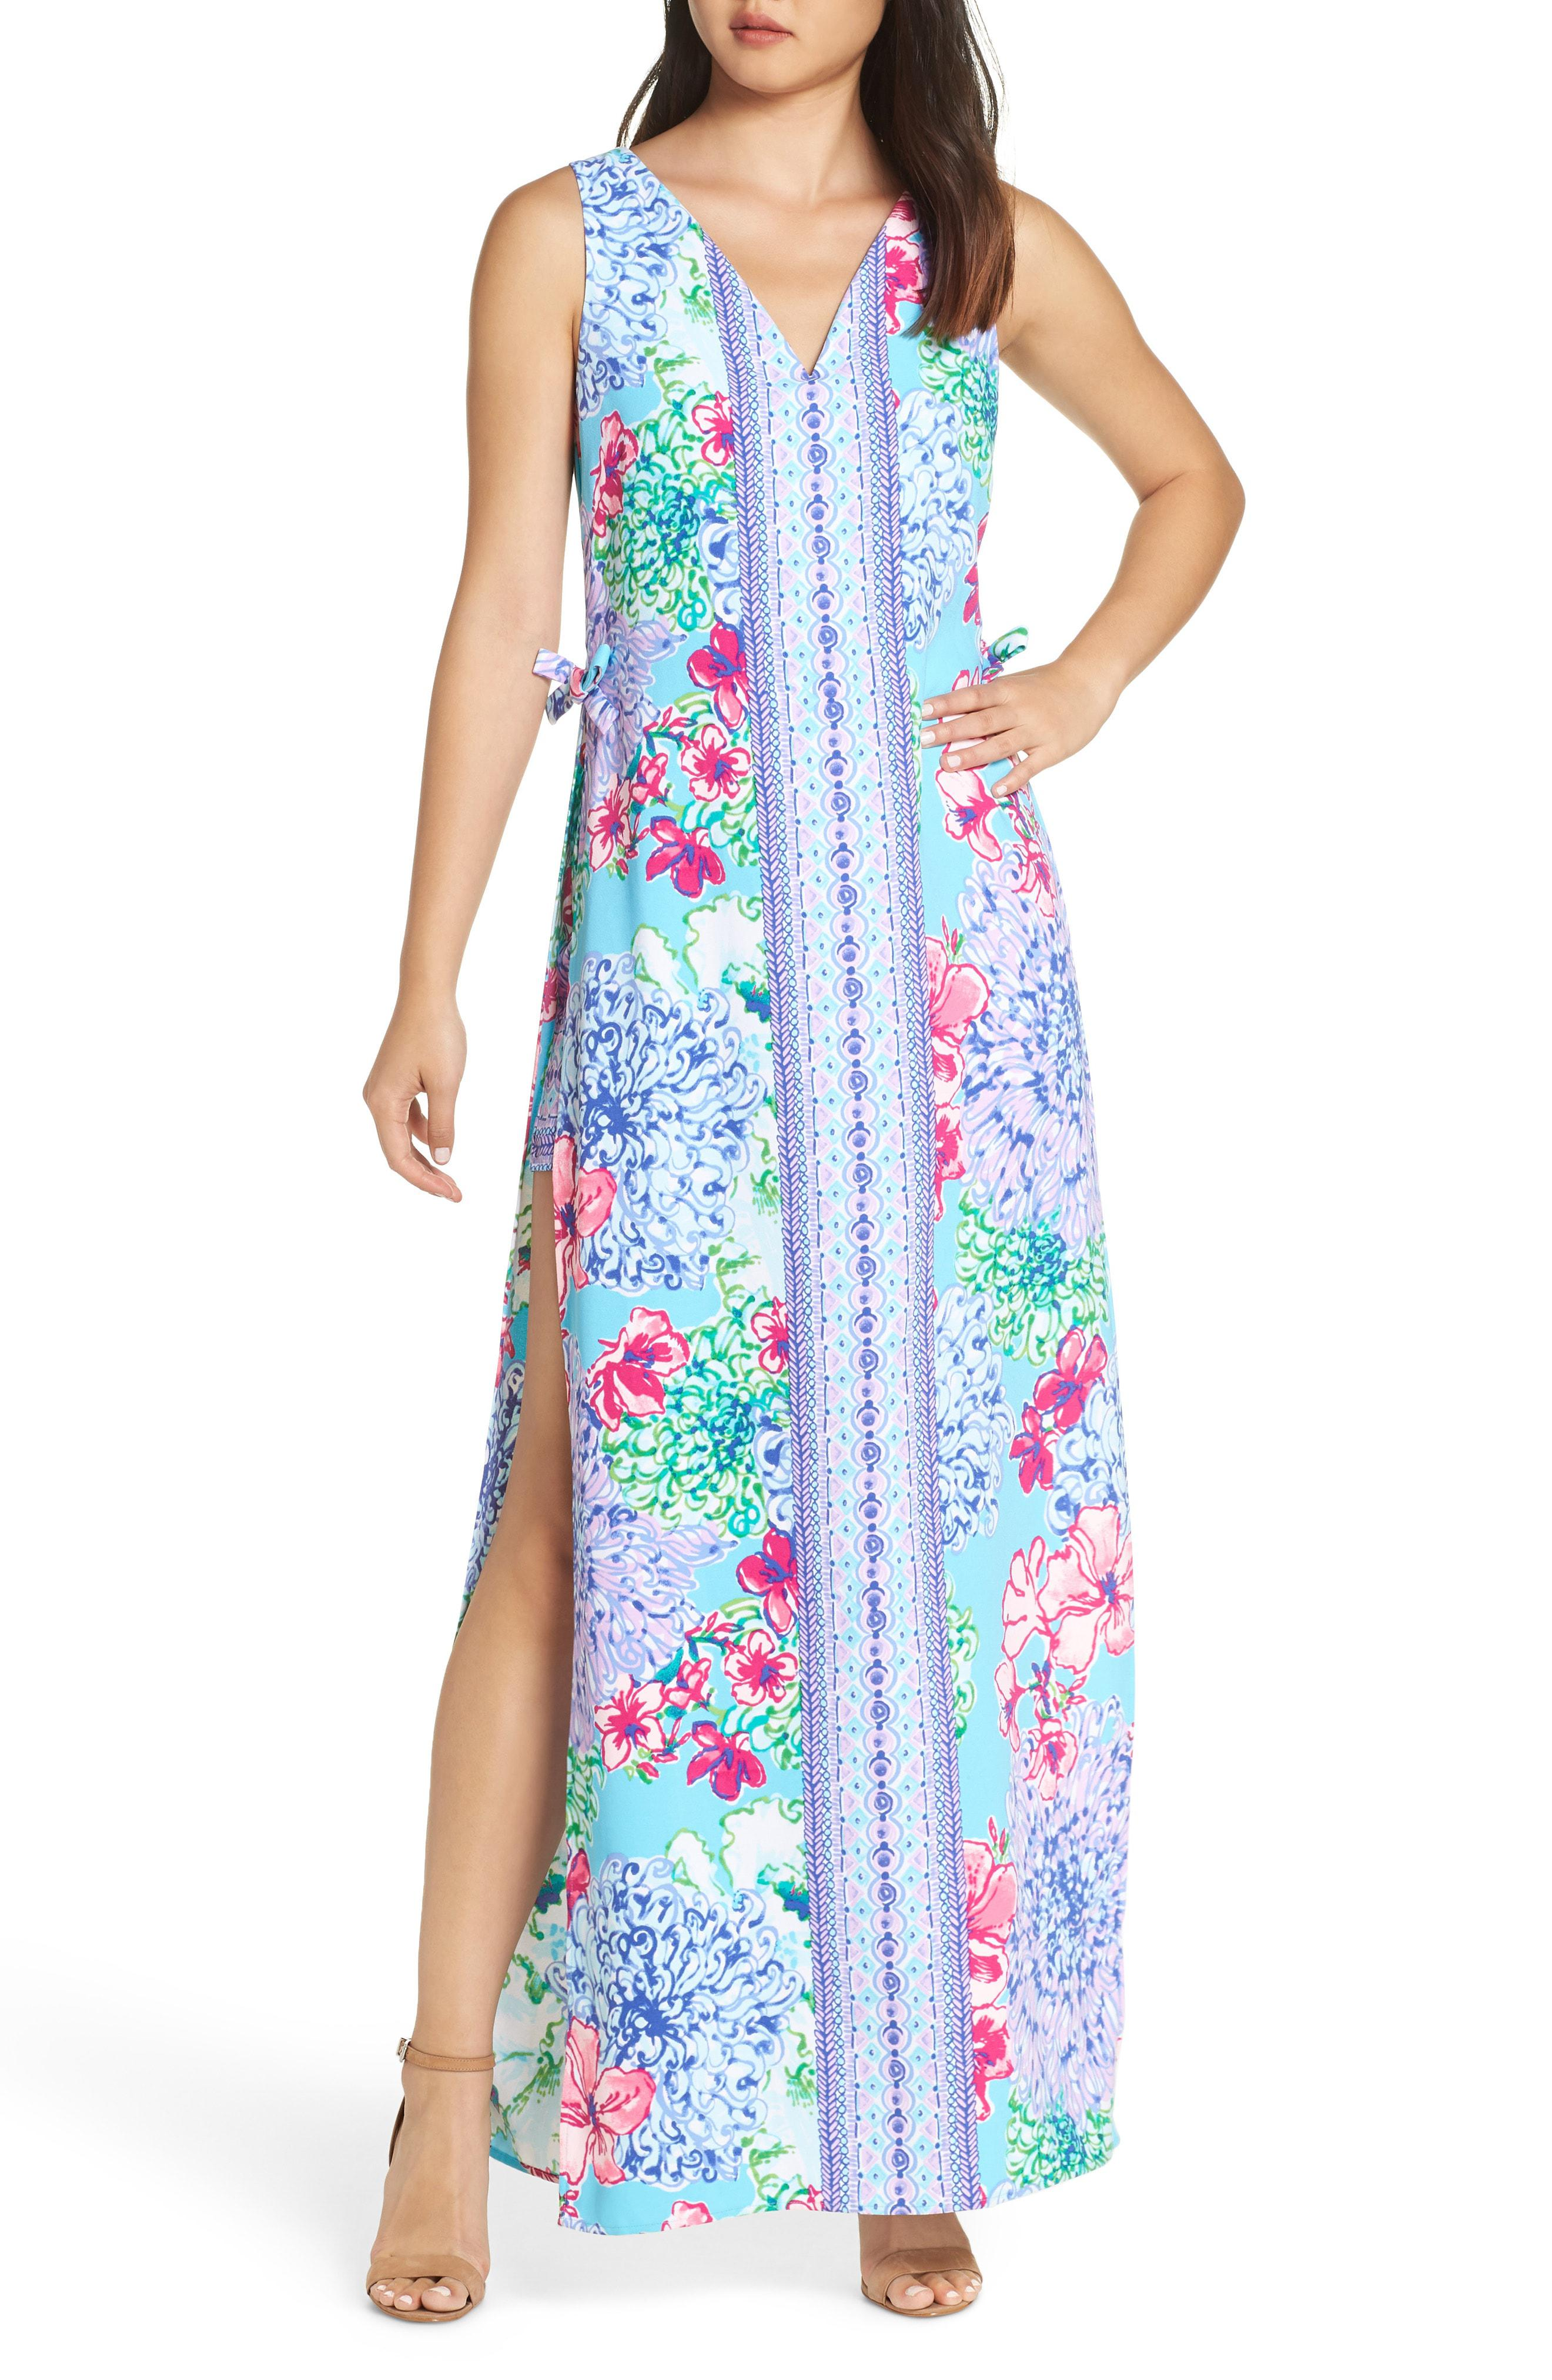 2cc46dfd59 Lyst - Lilly Pulitzer Lilly Pulitzer Donna Maxi Romper in Blue